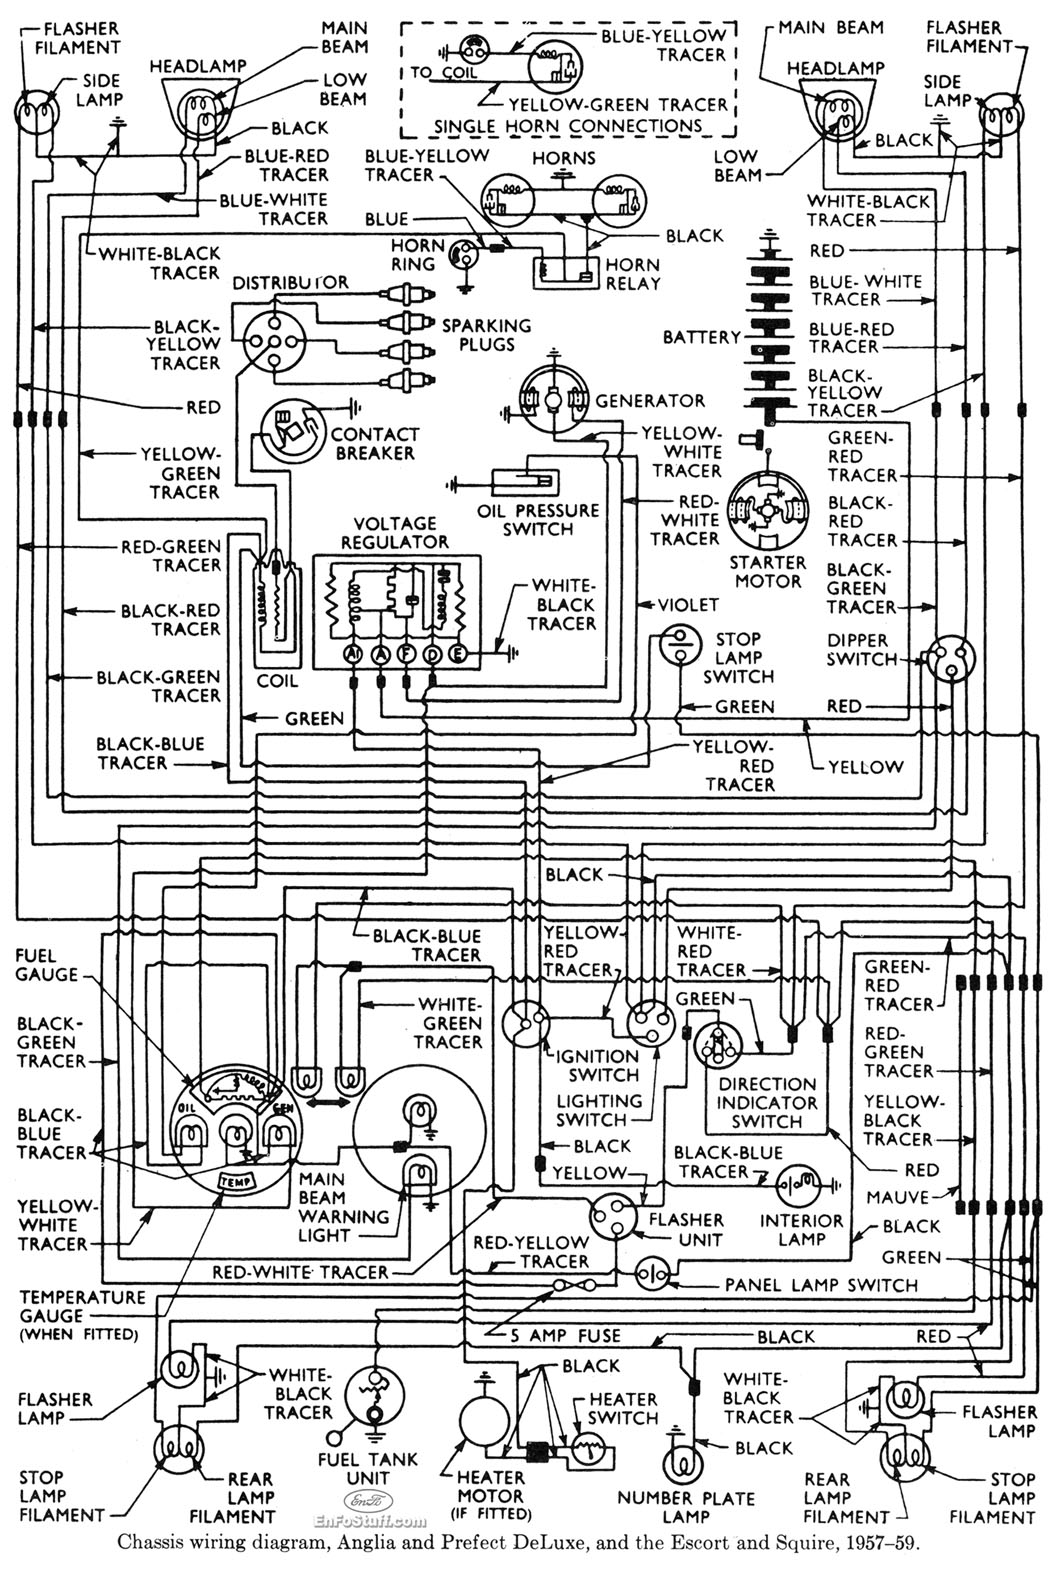 medium resolution of 2008 columbia par car wiring diagram 36 wiring diagram club car wiring diagram gas engine columbia par car service manual